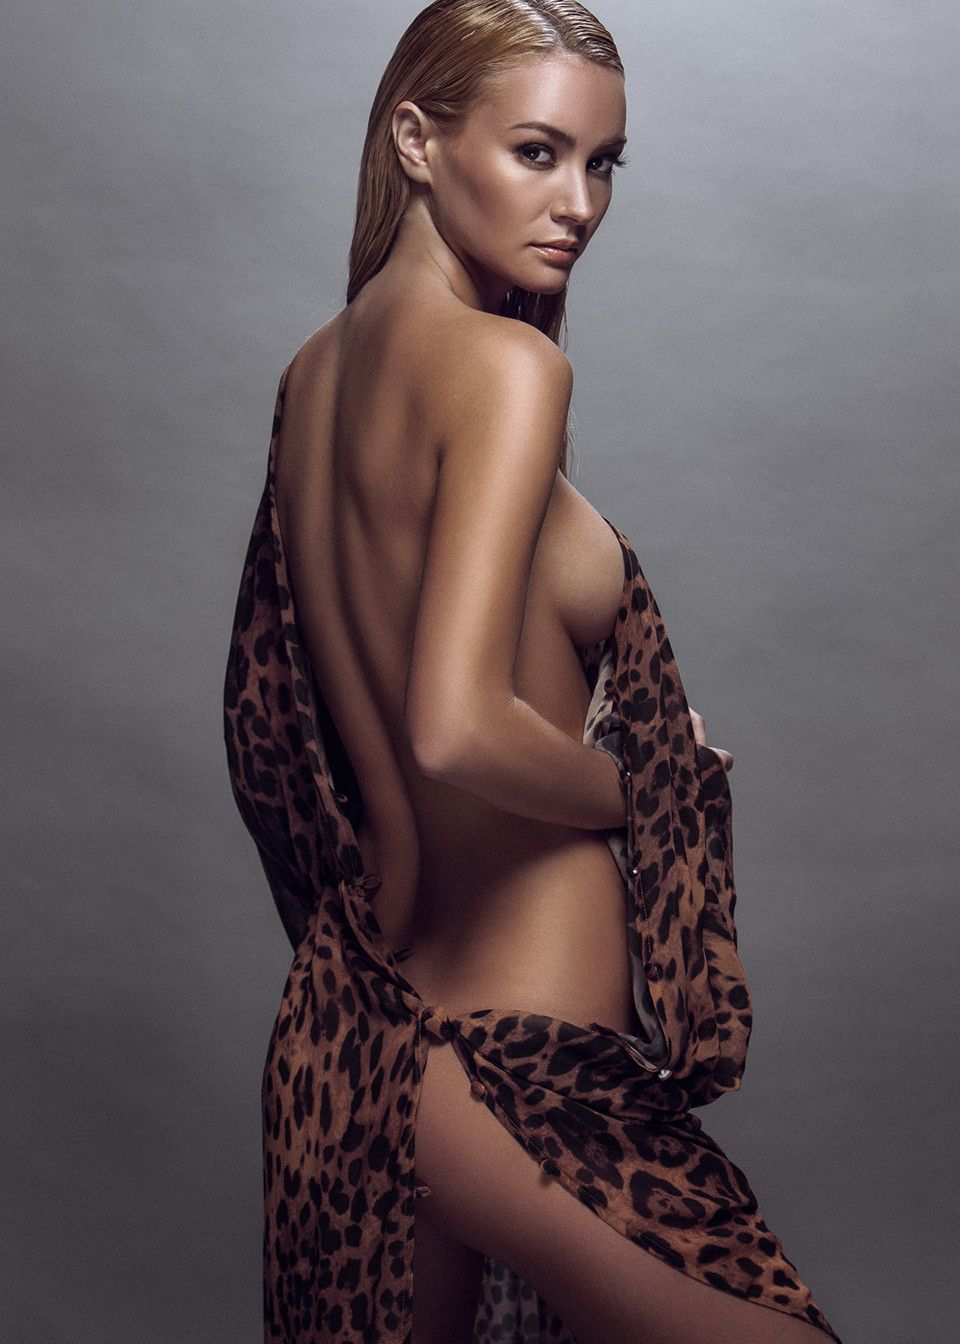 Images Holly Erika Eriksson naked (34 photos), Sexy, Leaked, Instagram, braless 2006